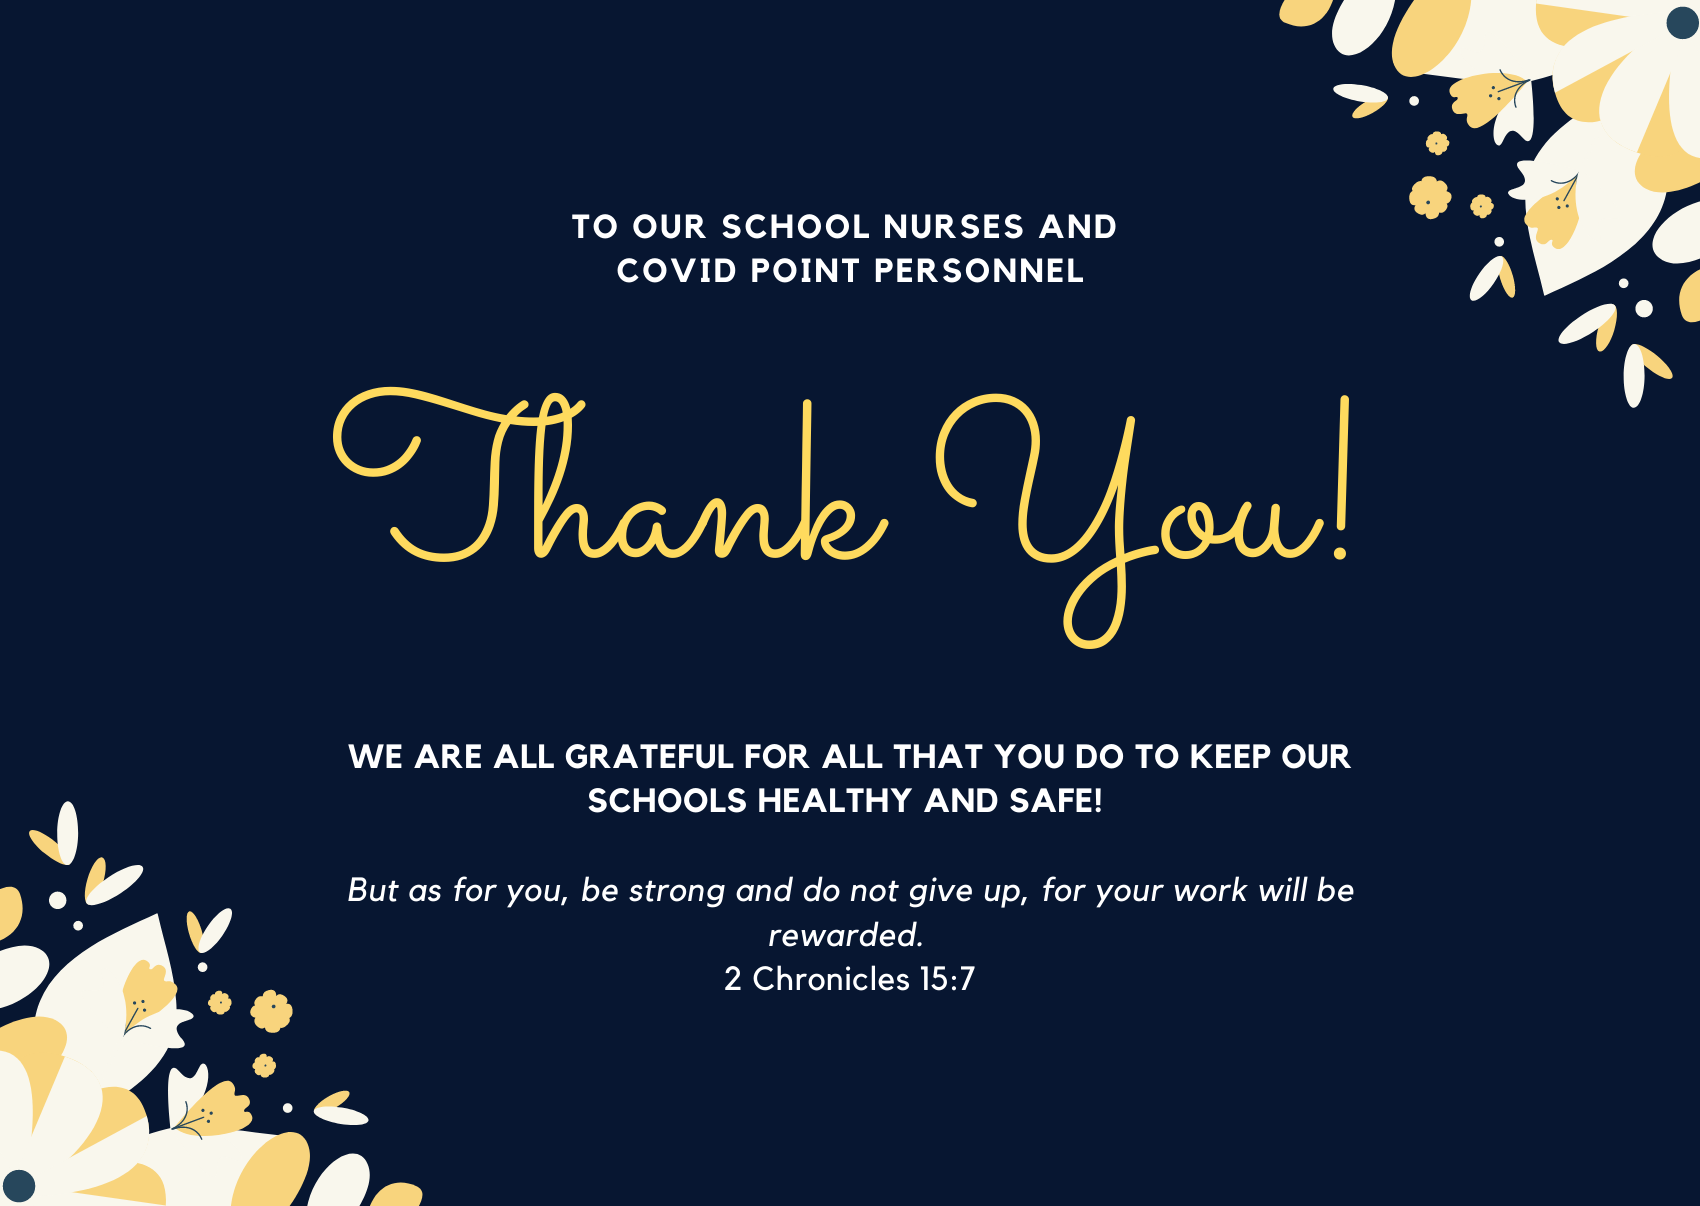 Christian Academy School System | To Our Nurses and COVID Point Personnel | Thank You